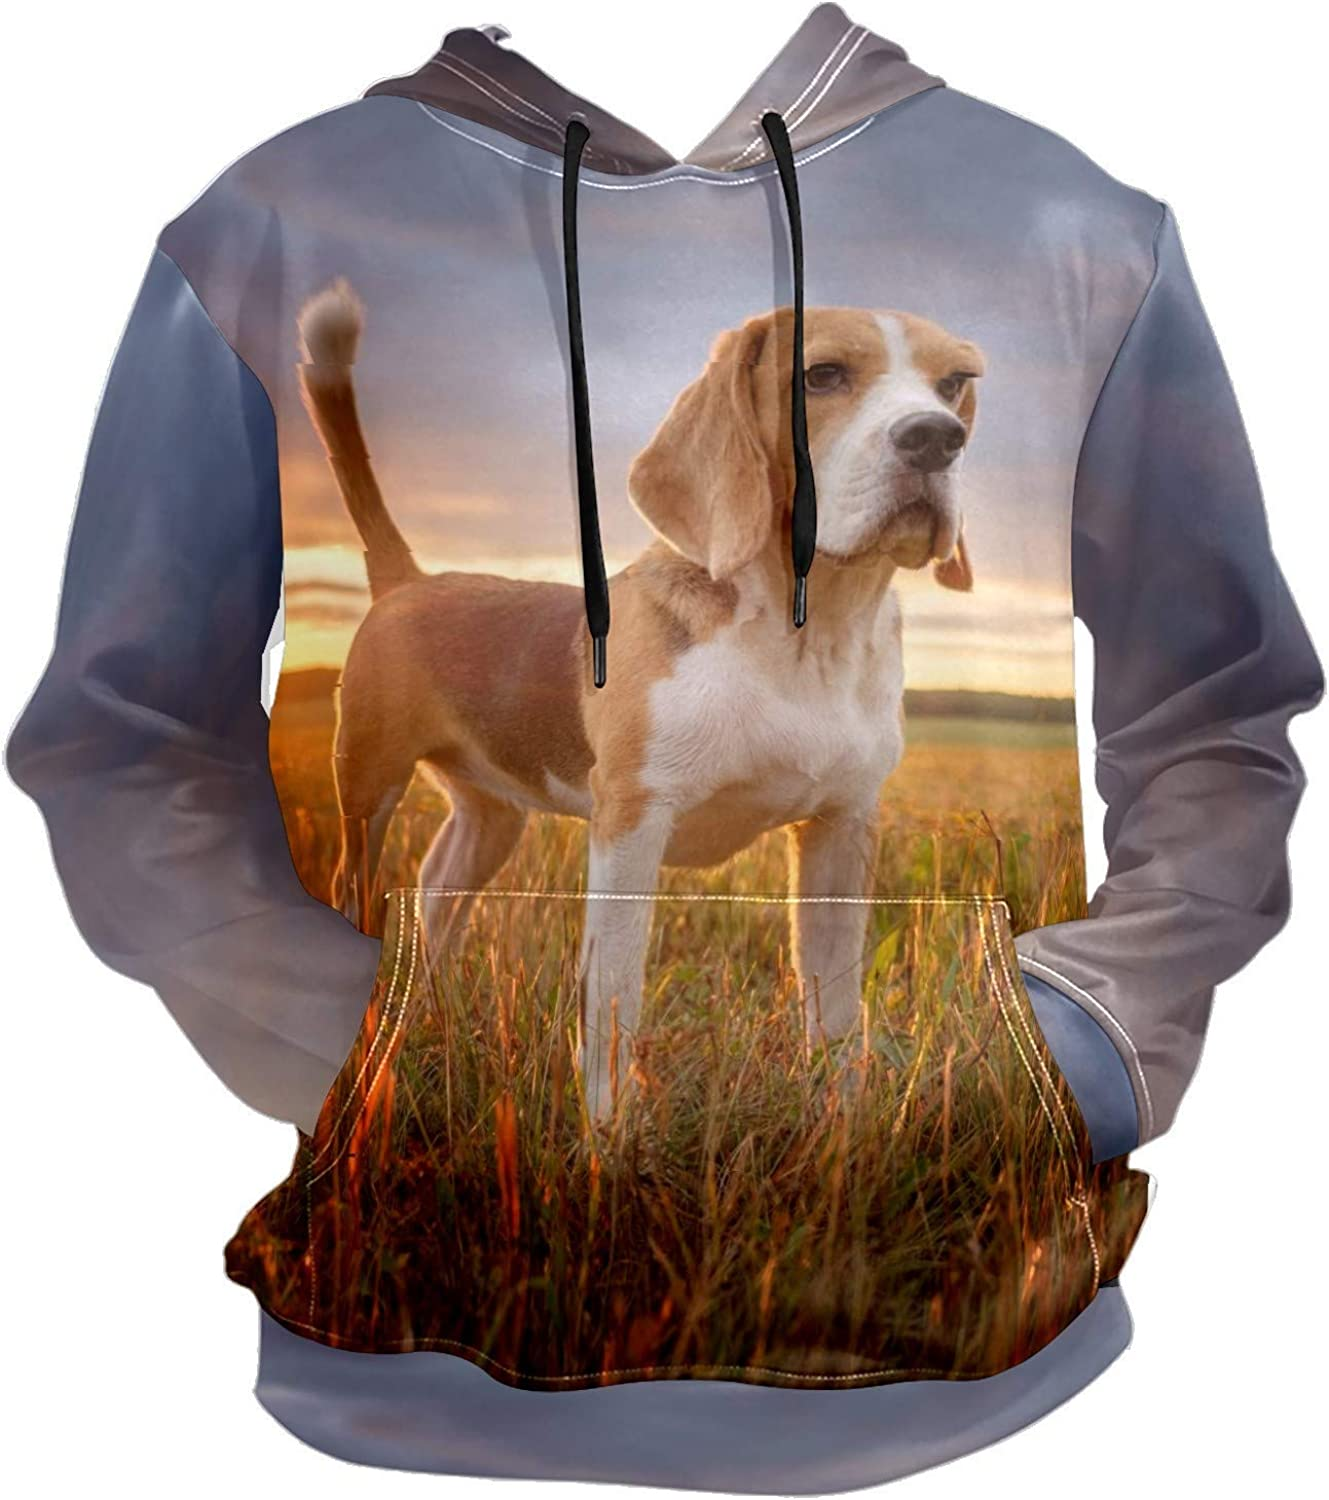 Men's Sport Hoodie Determined Dog Puppy Sunset Big and Tall Hoodies for Men Women Oversized Hooded Sweatshirt Hip Hop Pullover Hoodie Midweight Hood for Boys Girls